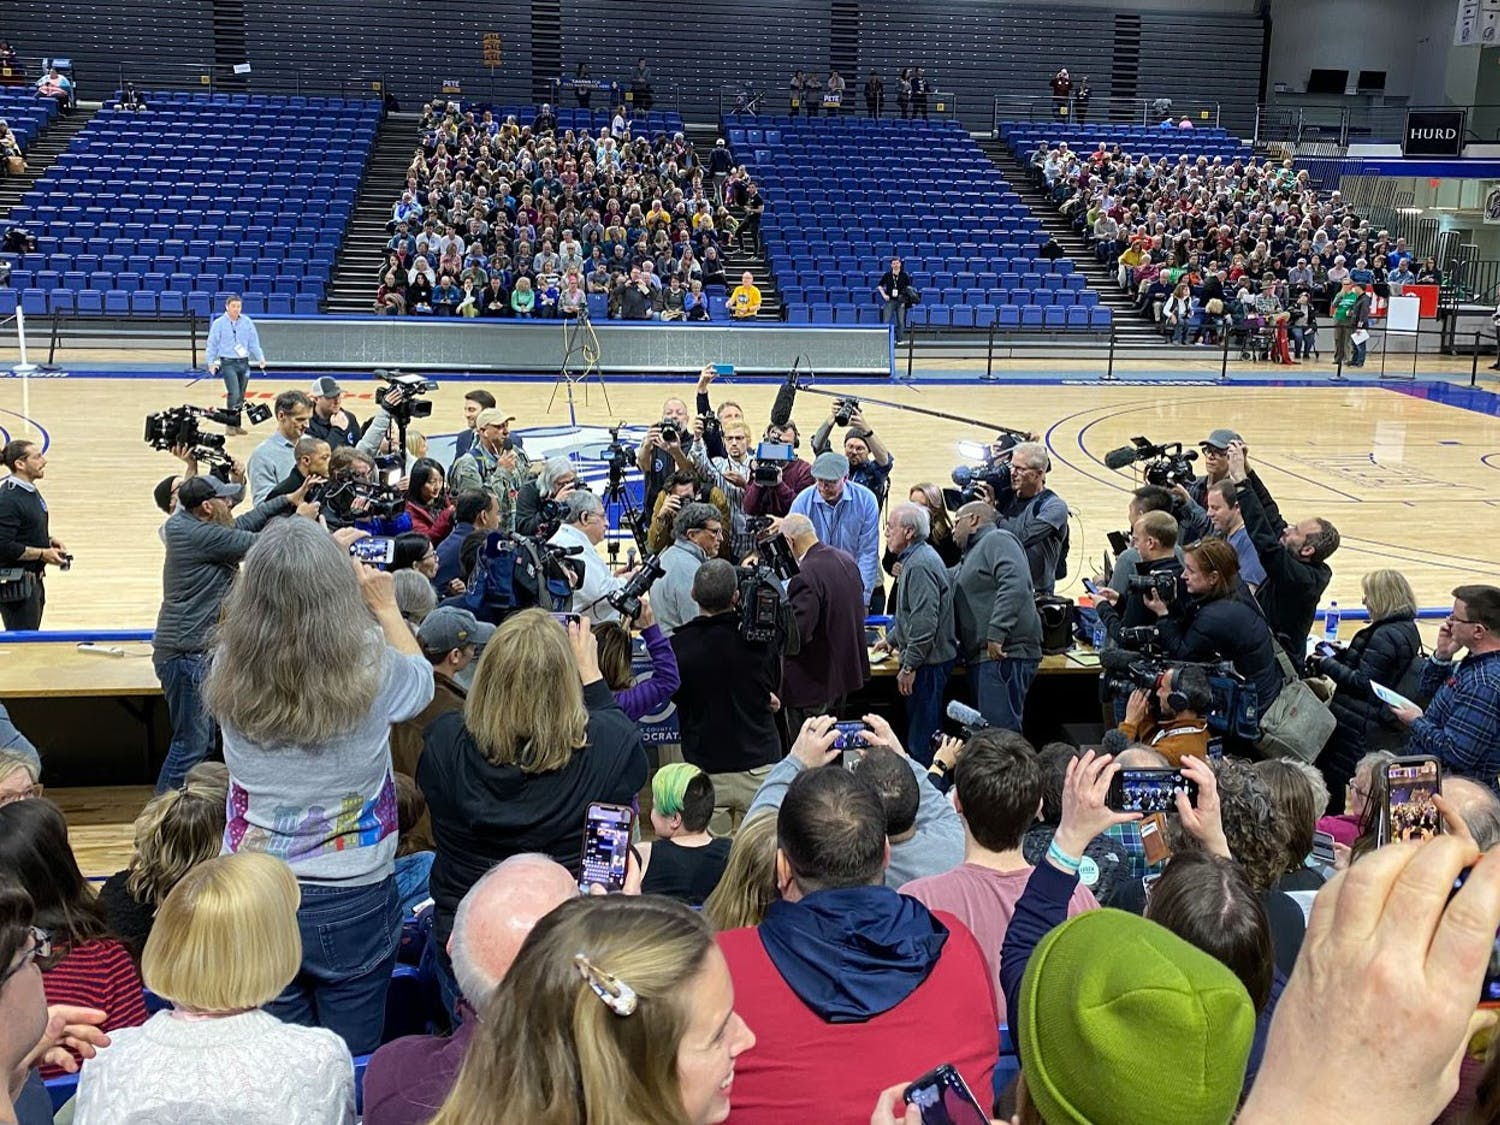 The media swarms Jeffrey Goetz, caucus chair of Des Moines precinct 62. This caucus, one of the state's largest, was held in the Drake University Knapp Center––a stadium that seats more than 7,150.